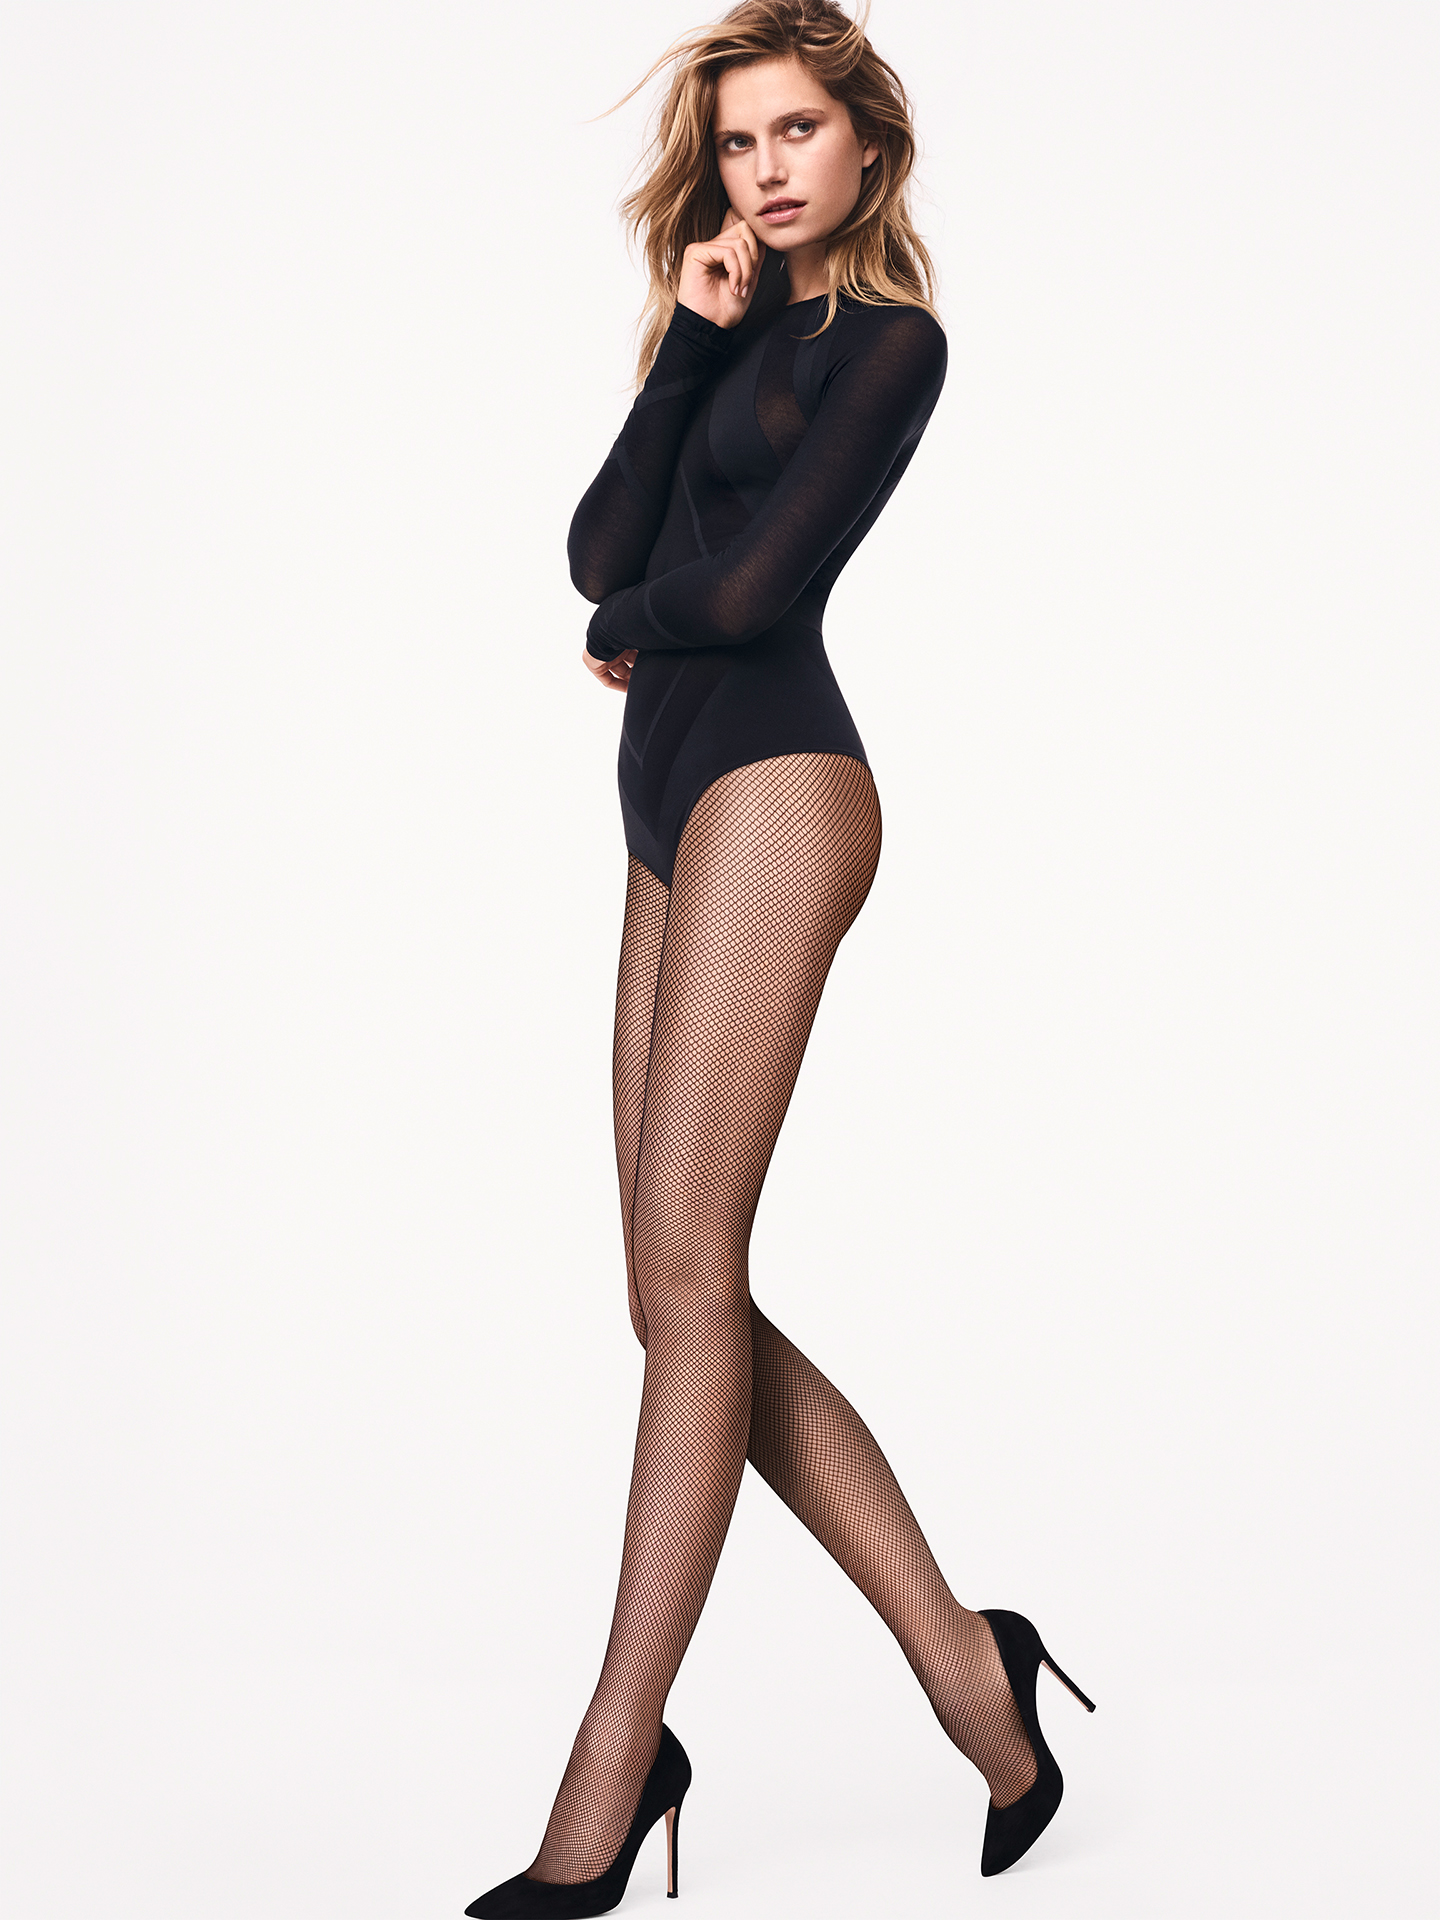 Twenties Tights - black - S | Sportbekleidung > Sporthosen > Tights | Wolford